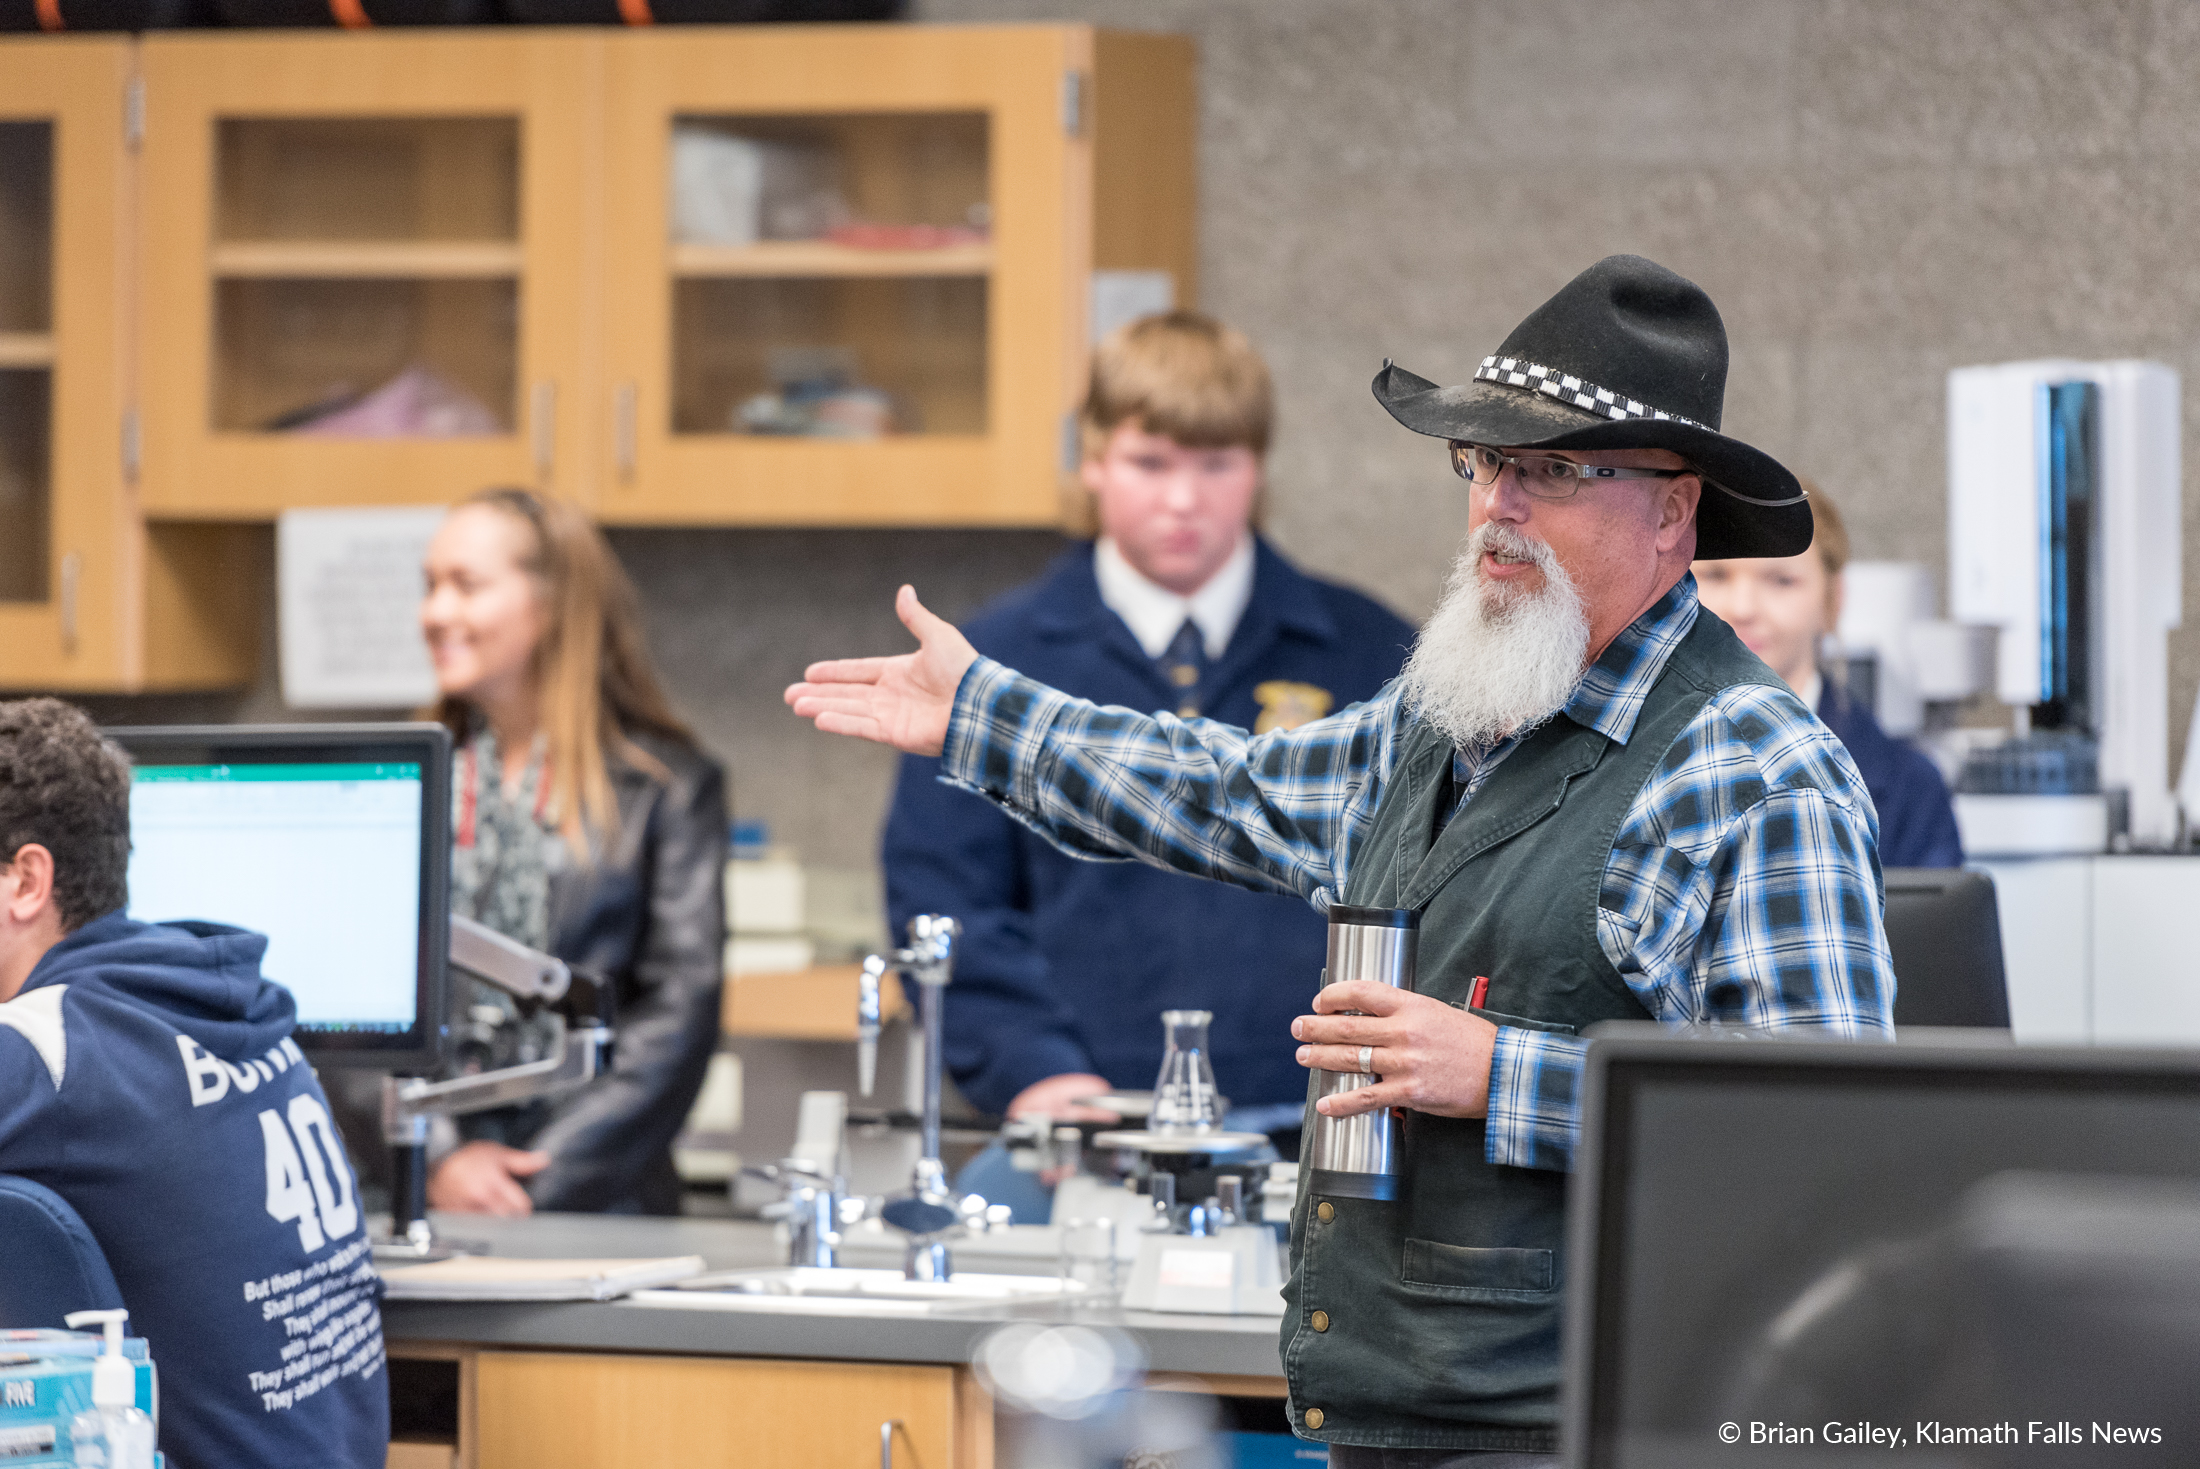 Keith Duran shows one of the KCC Science Laboratories to the Harvest Tour guests. ( Brian Gailey )